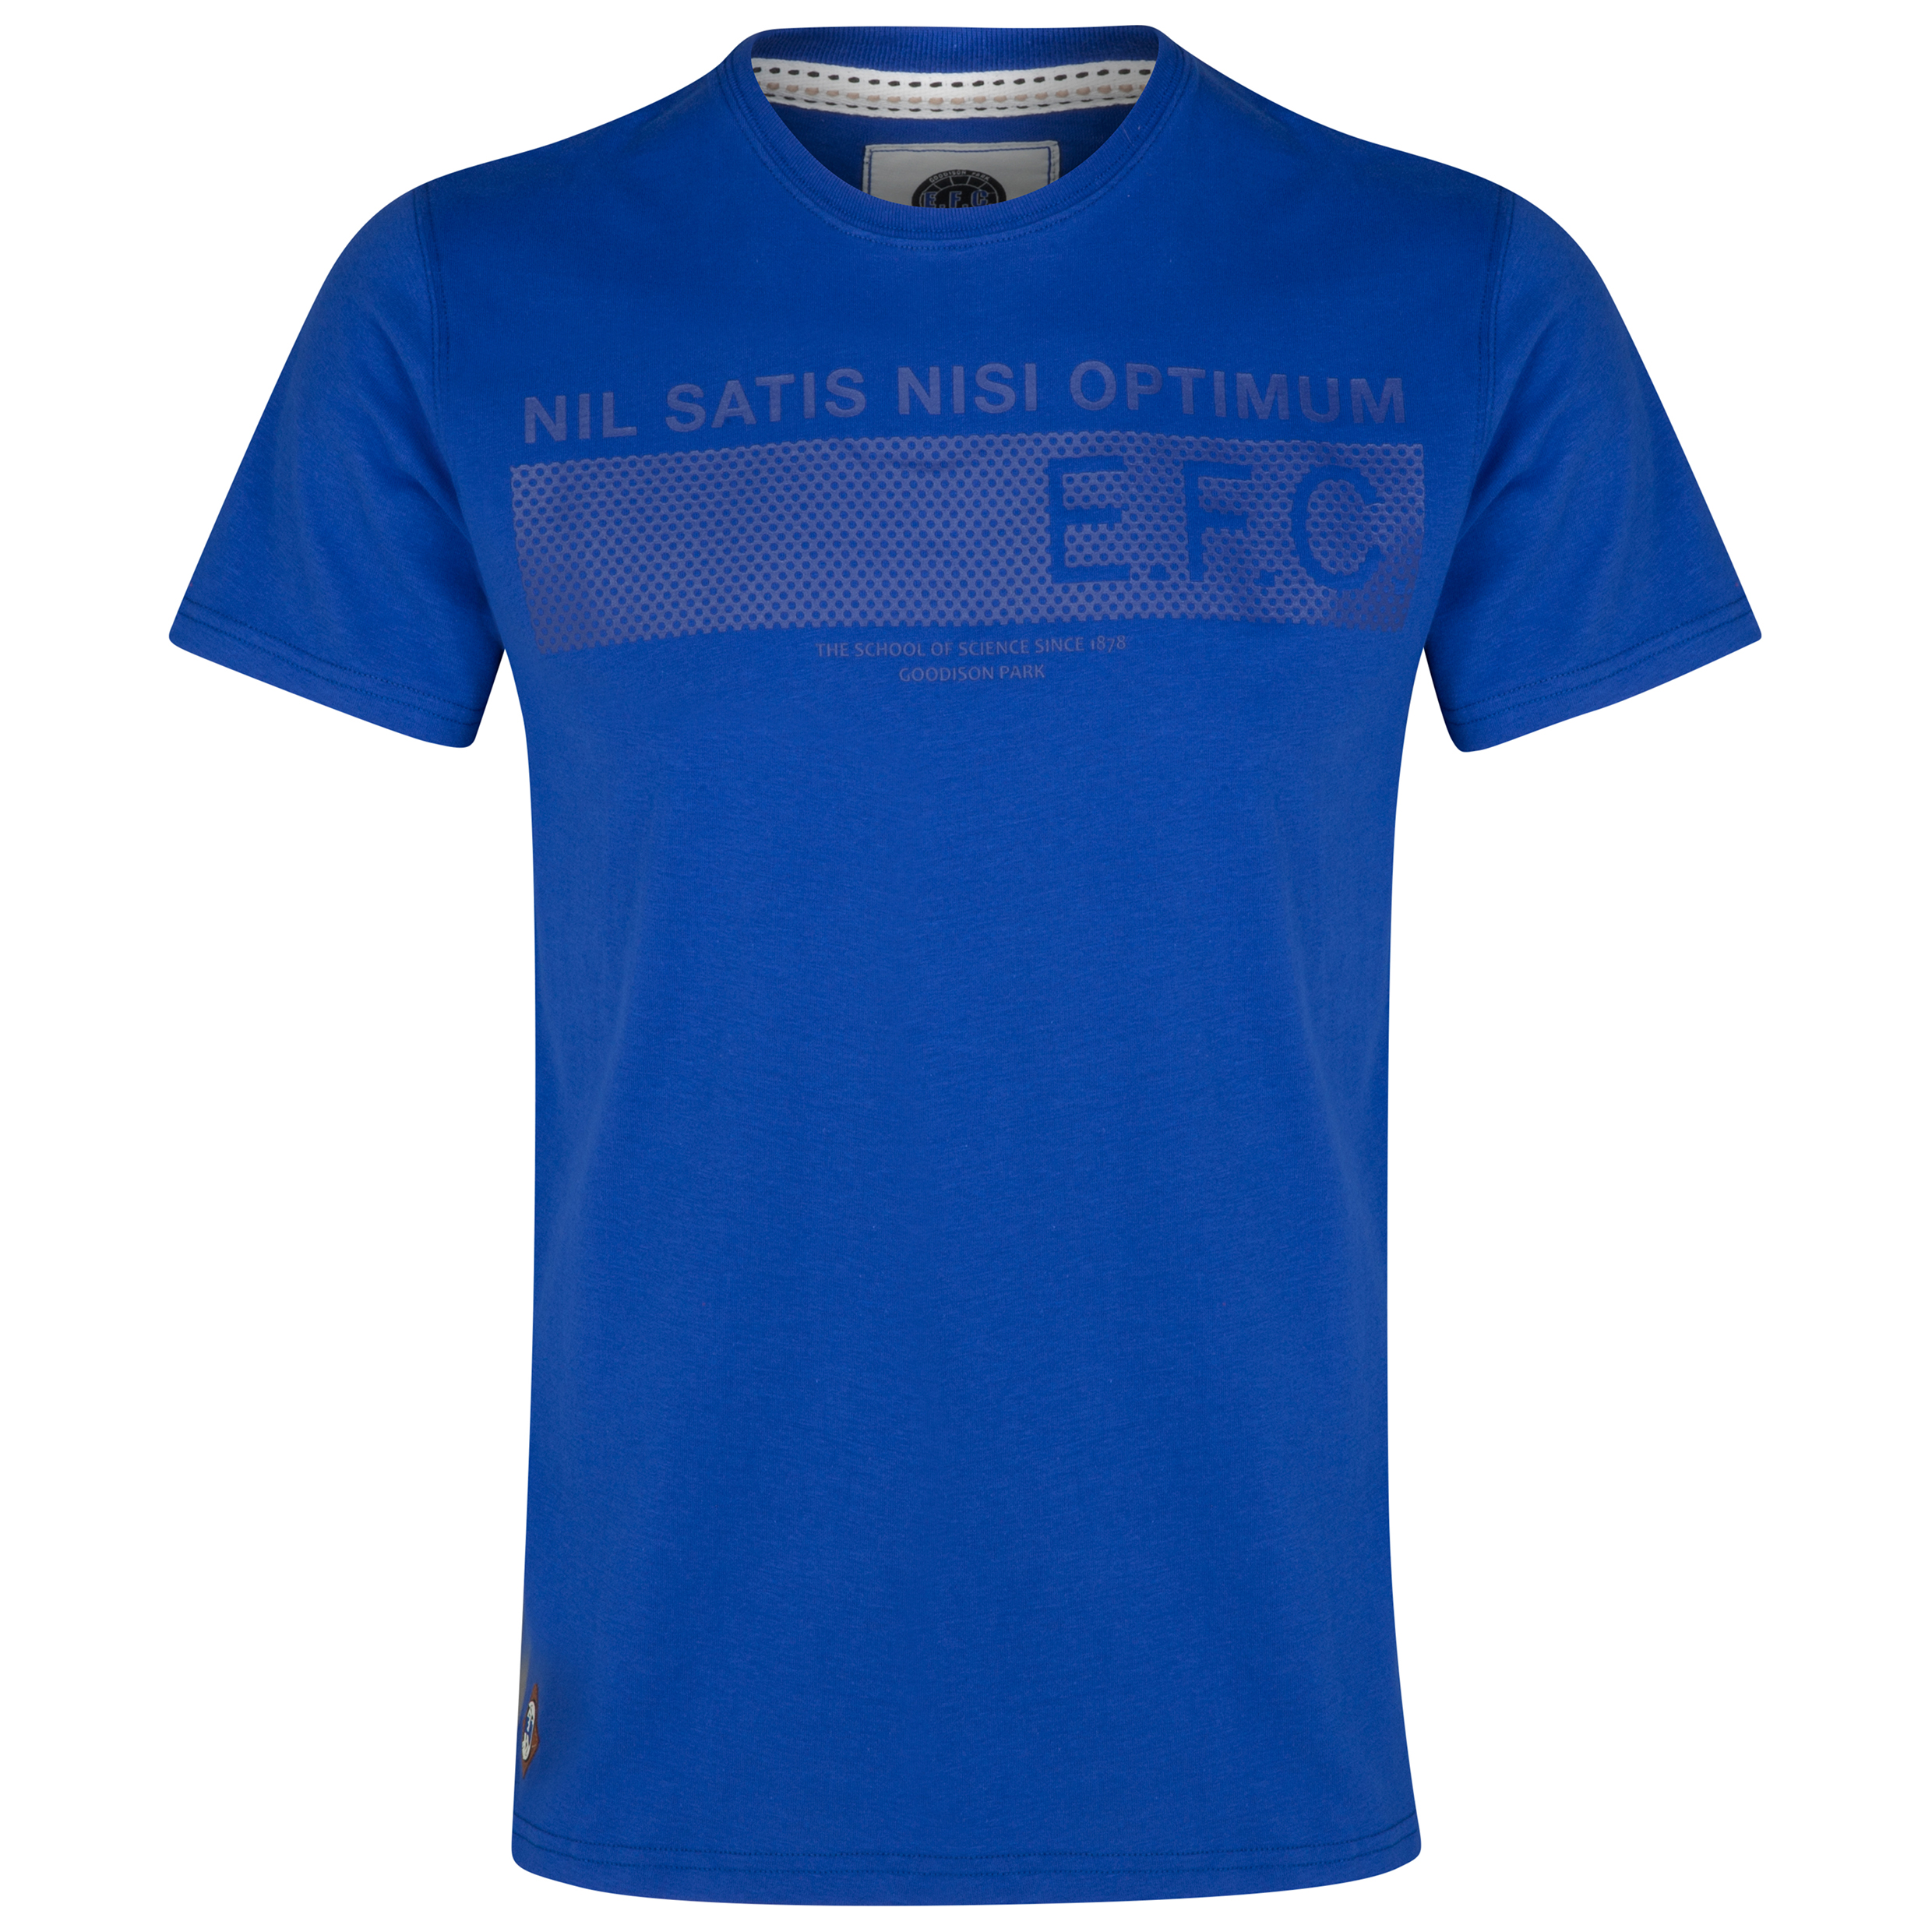 Everton T-Shirt- Everton Blue - Older Boys